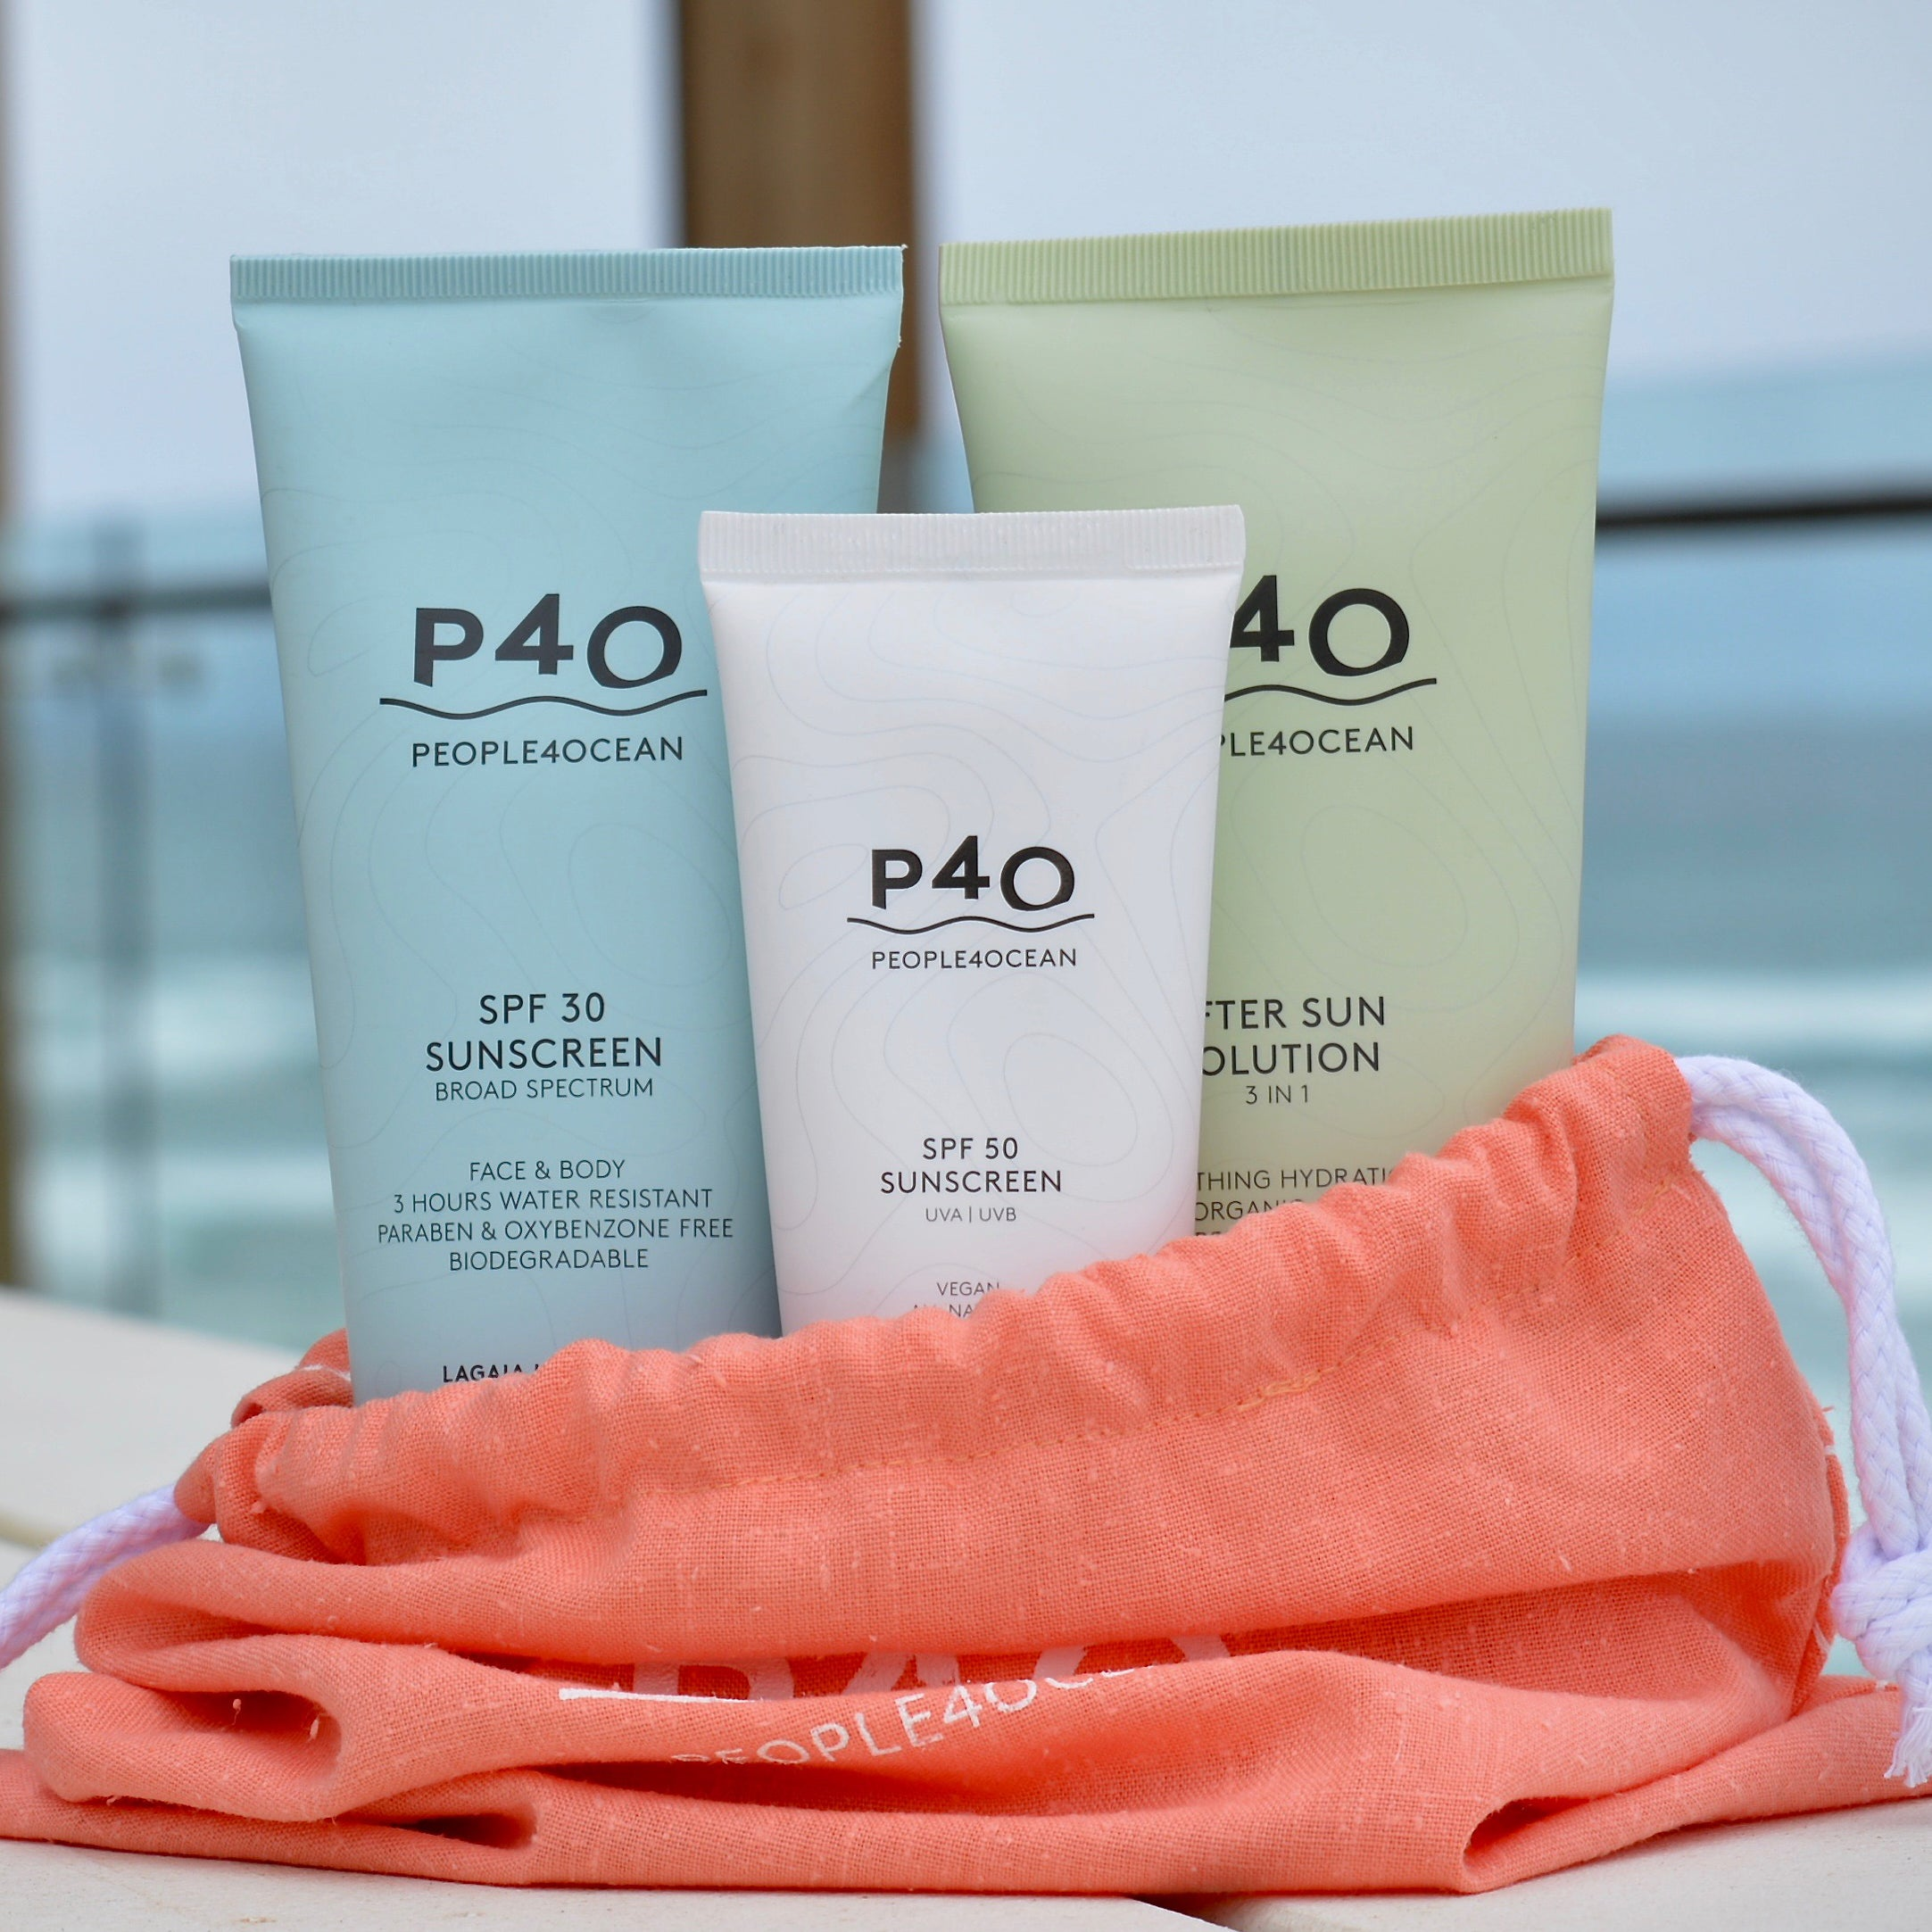 SPF30, SPF50 Sunscreen & After Sun Family Pack